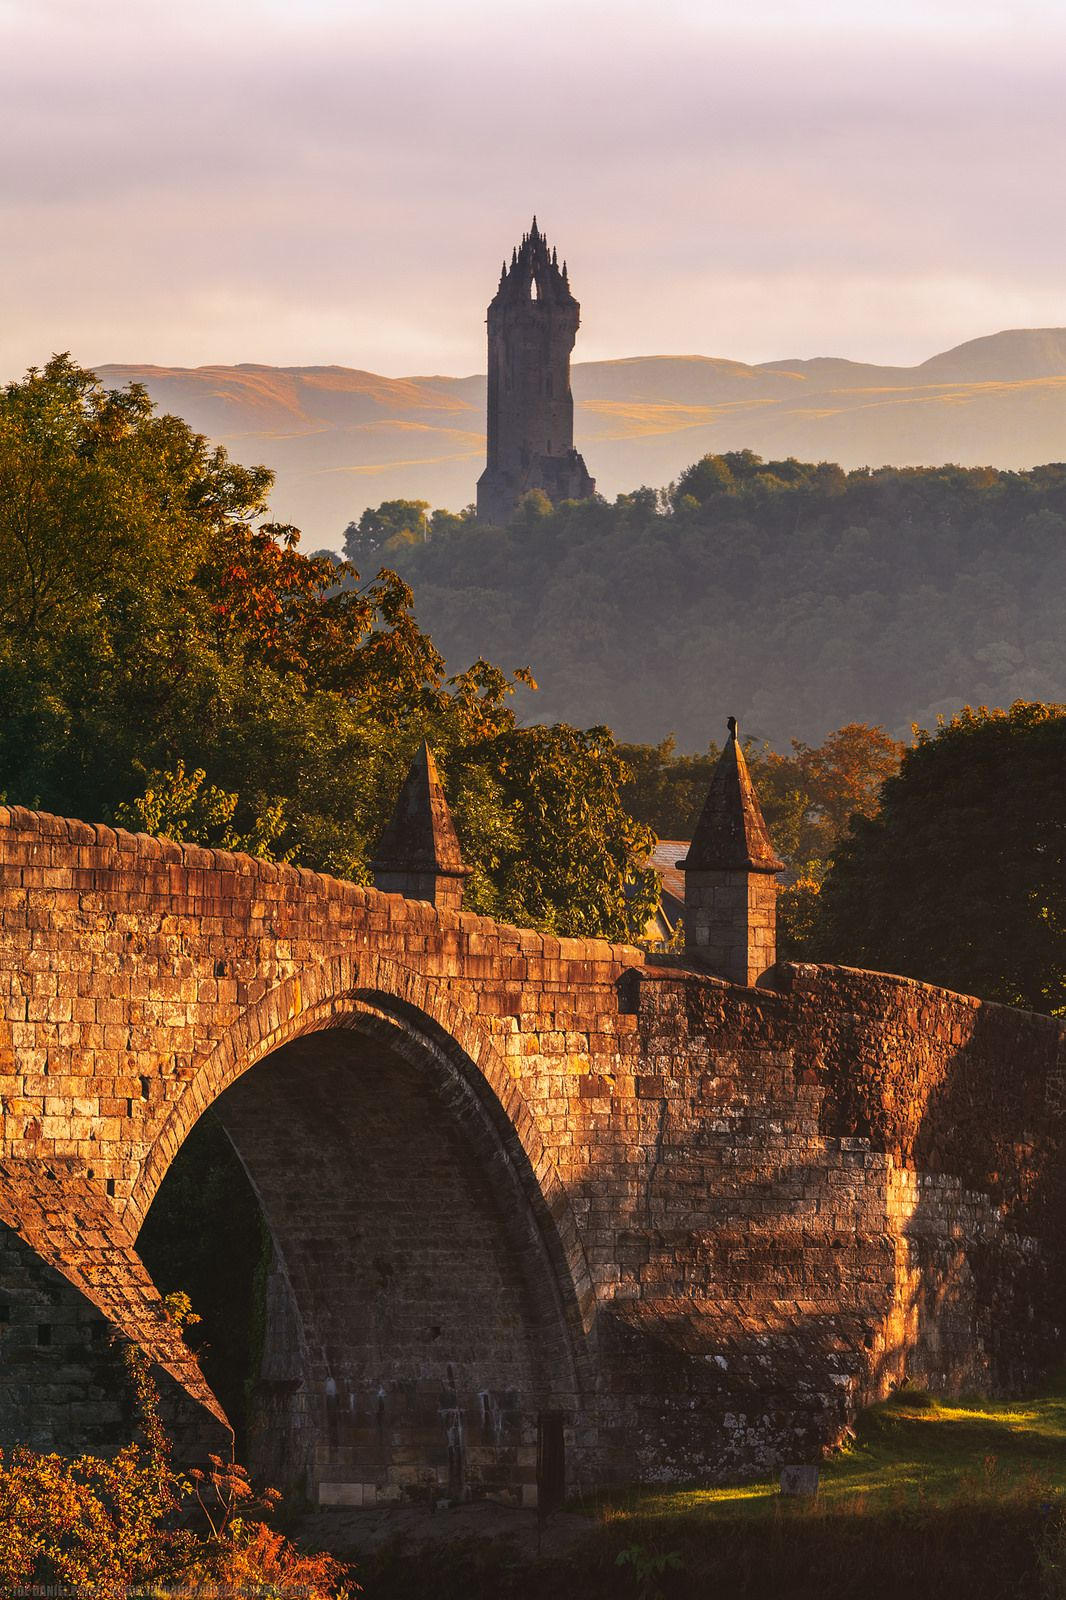 Hazy Day at The National William Wallace Monument, Stirling, Scotland